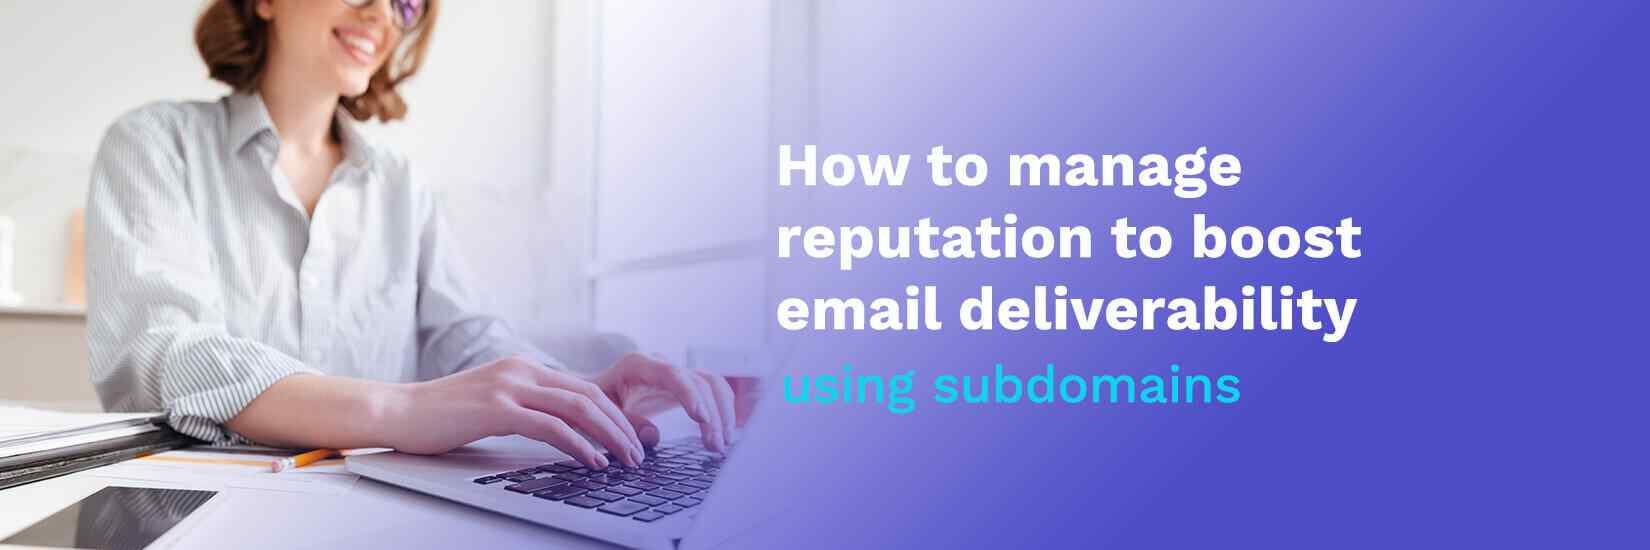 How to manage reputation to boost email deliverability using subdomains